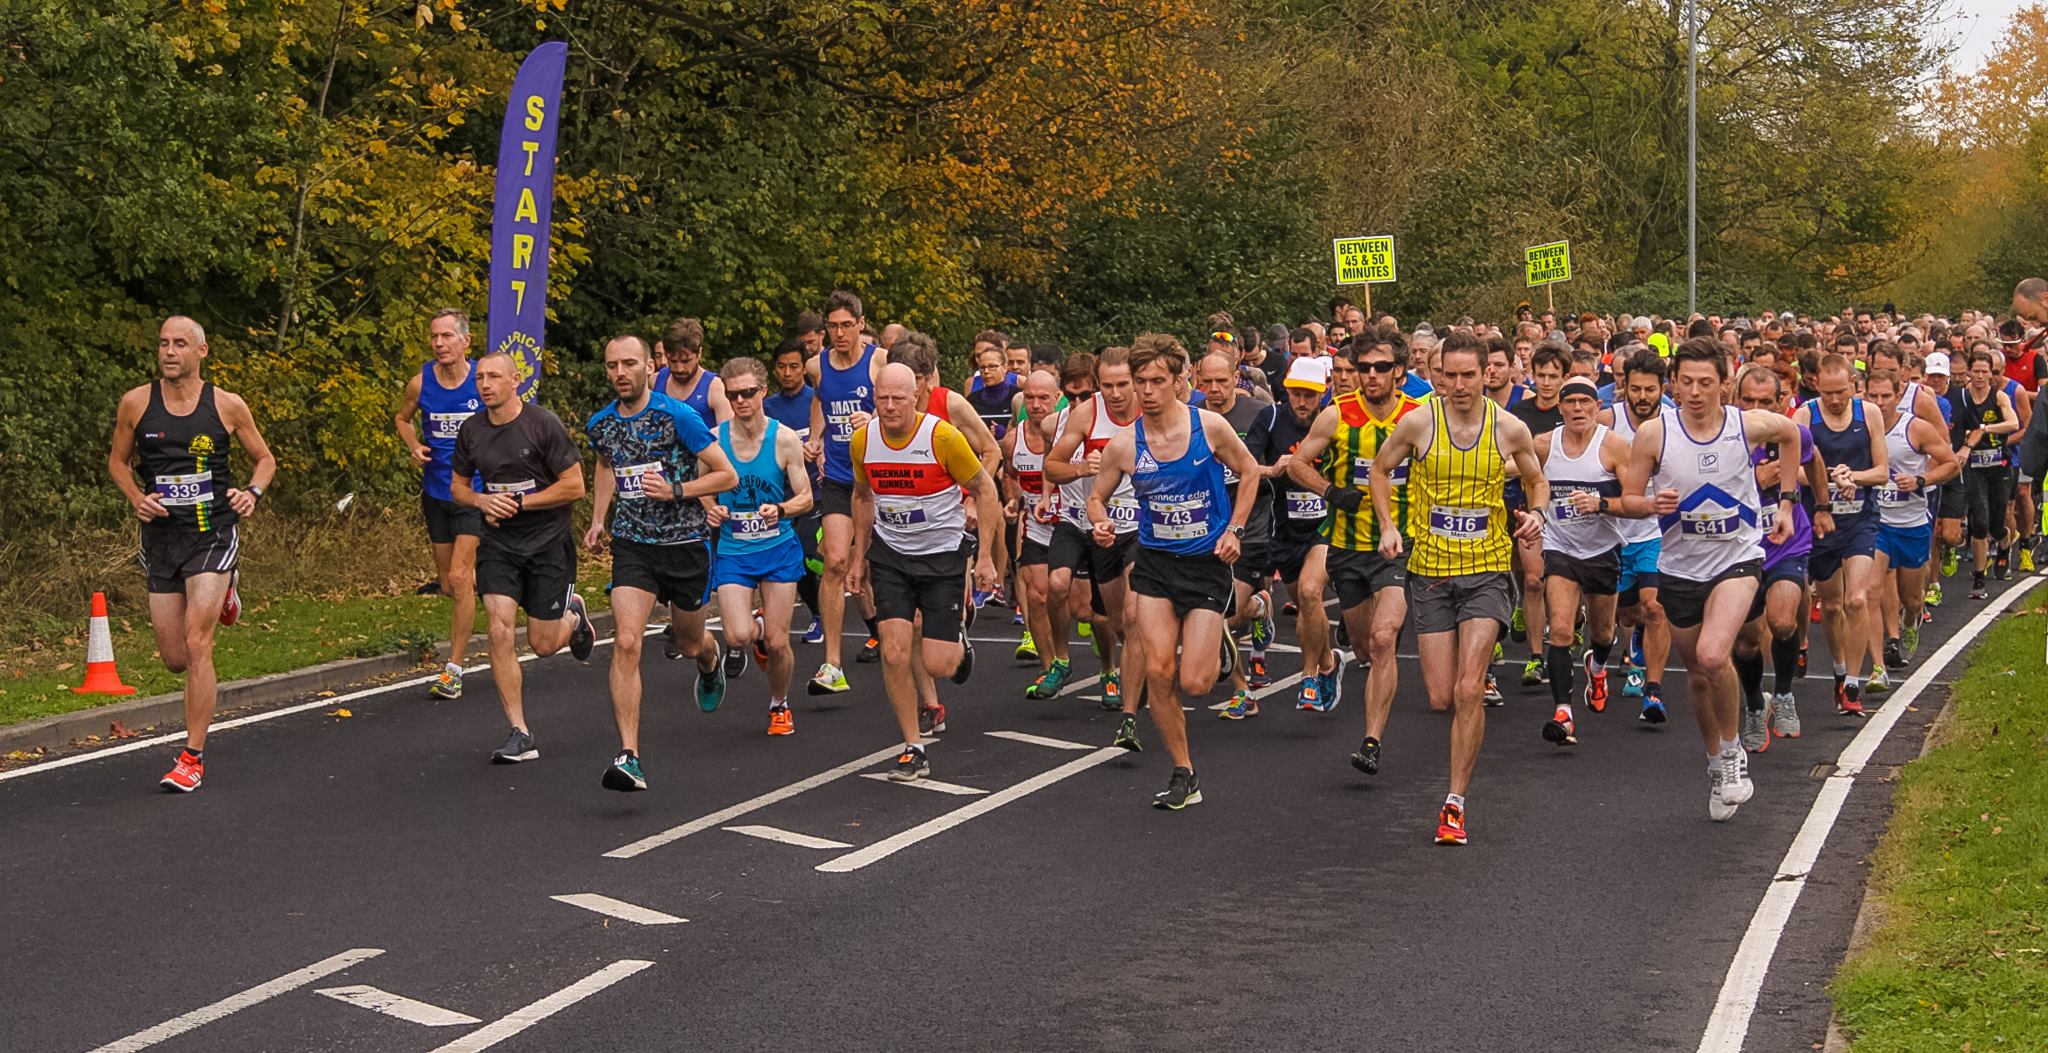 Billericay Striders 10k race starting line